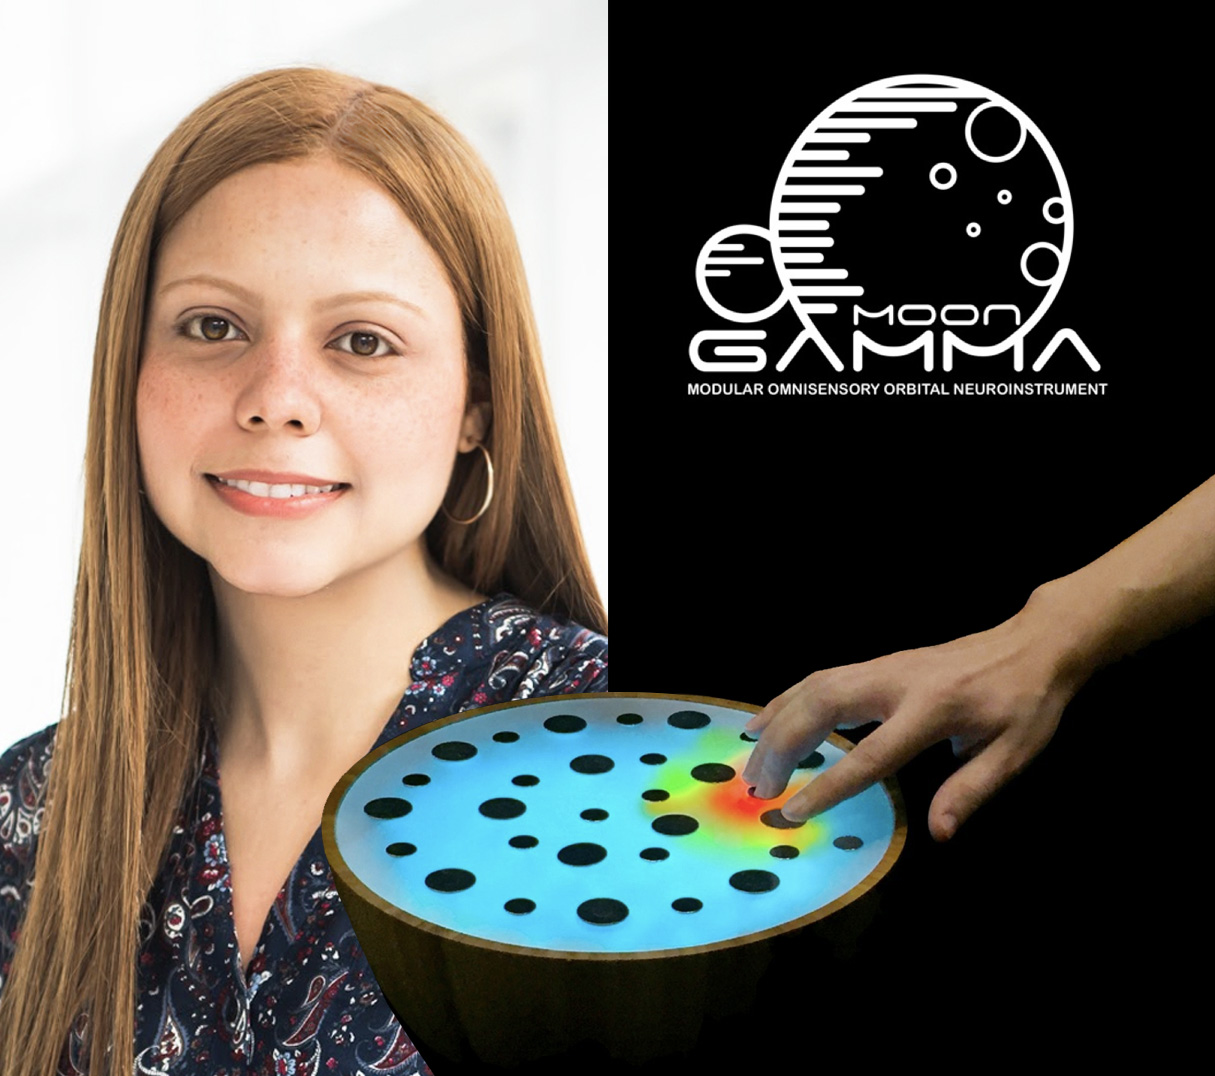 Alexandra Rieger, a doctoral researcher in Tod Machover's Opera of The Future Lab, performed on the GAMMA MOON, a new instrument specially designed to combine 40-hertz audio, light and vibration to encourage immersive entrainment.